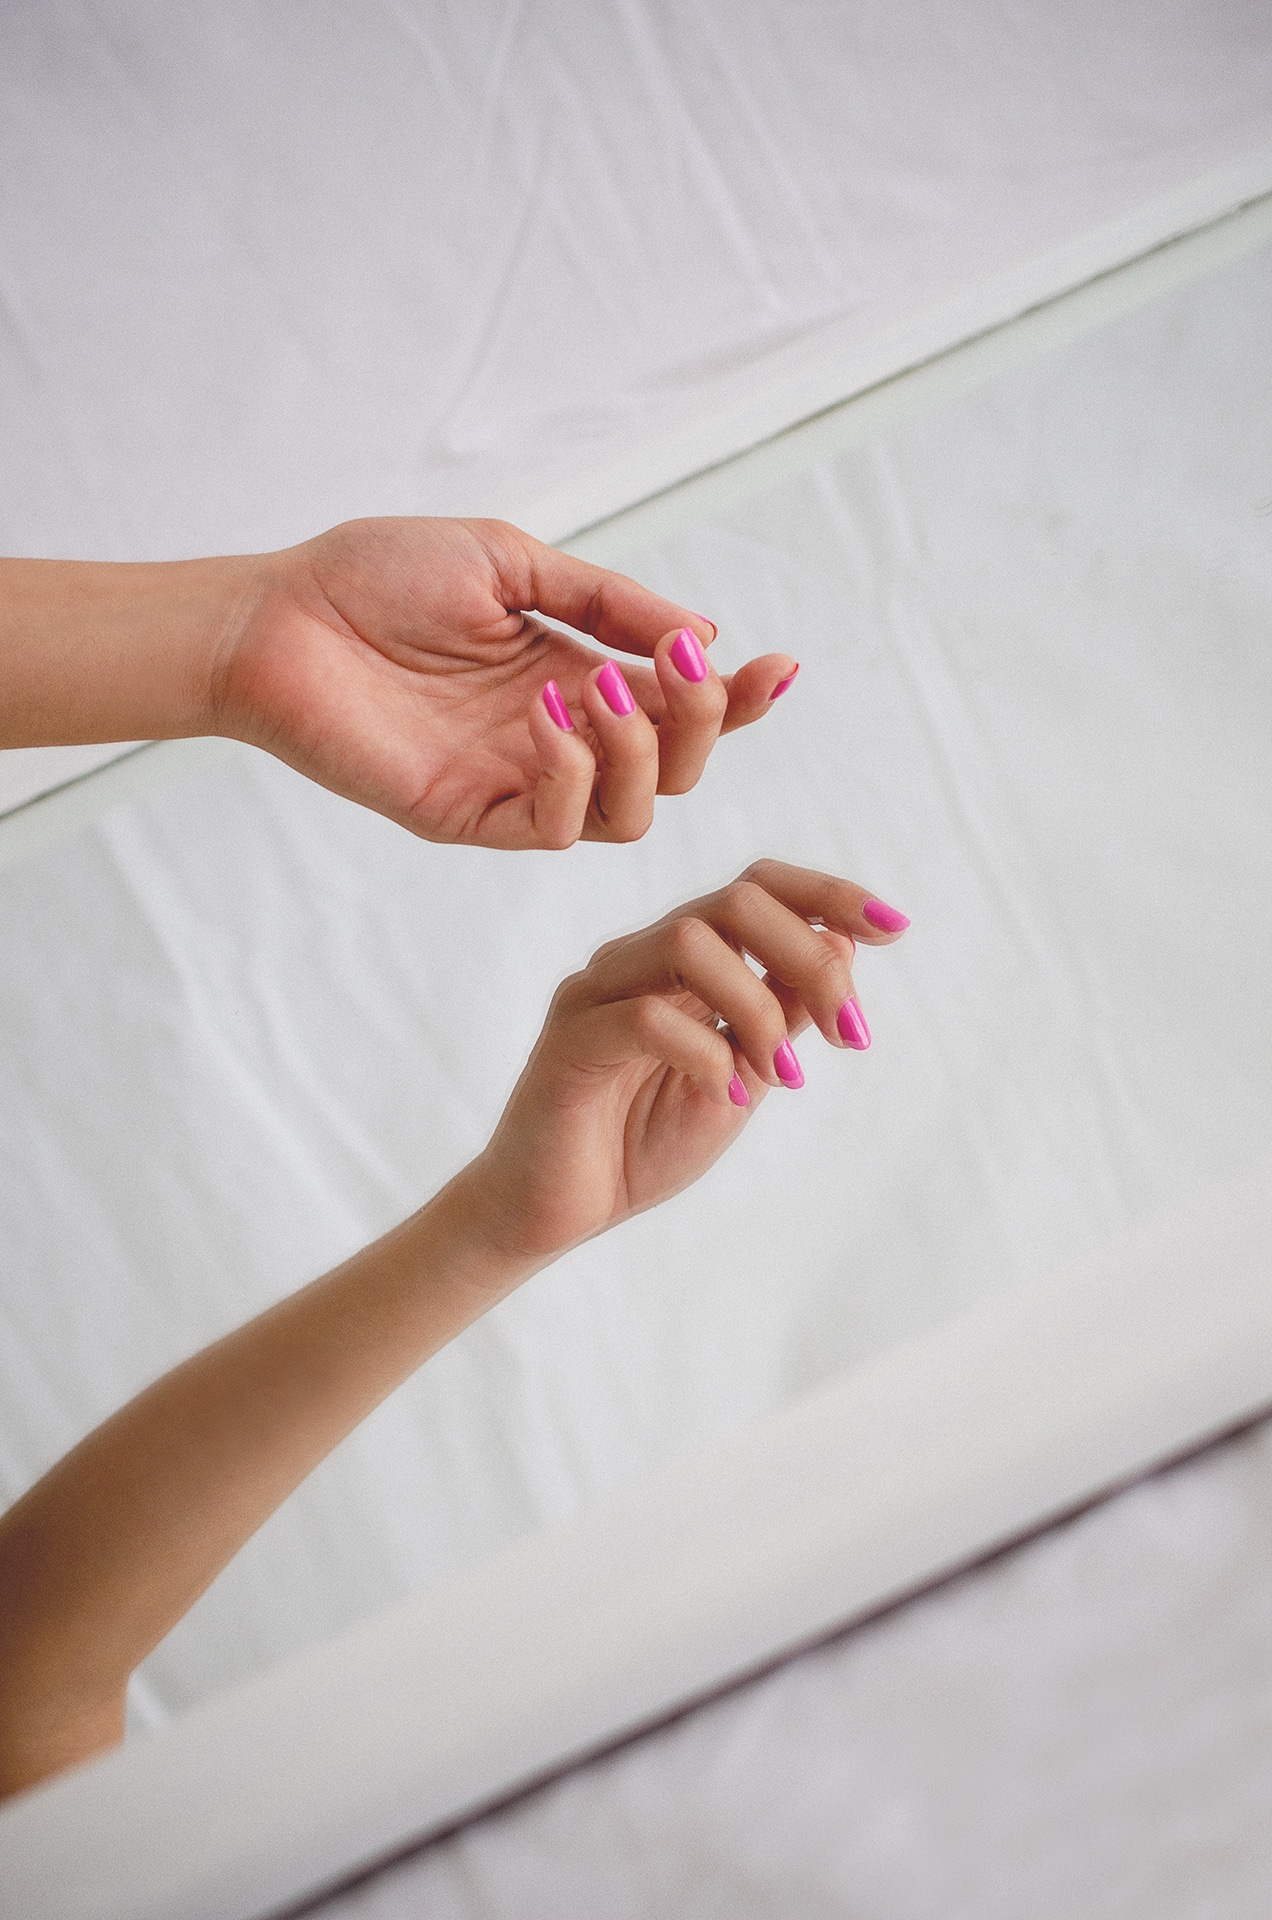 fair skin model wearing pink nail polish by sienna holding her hand over a mirror